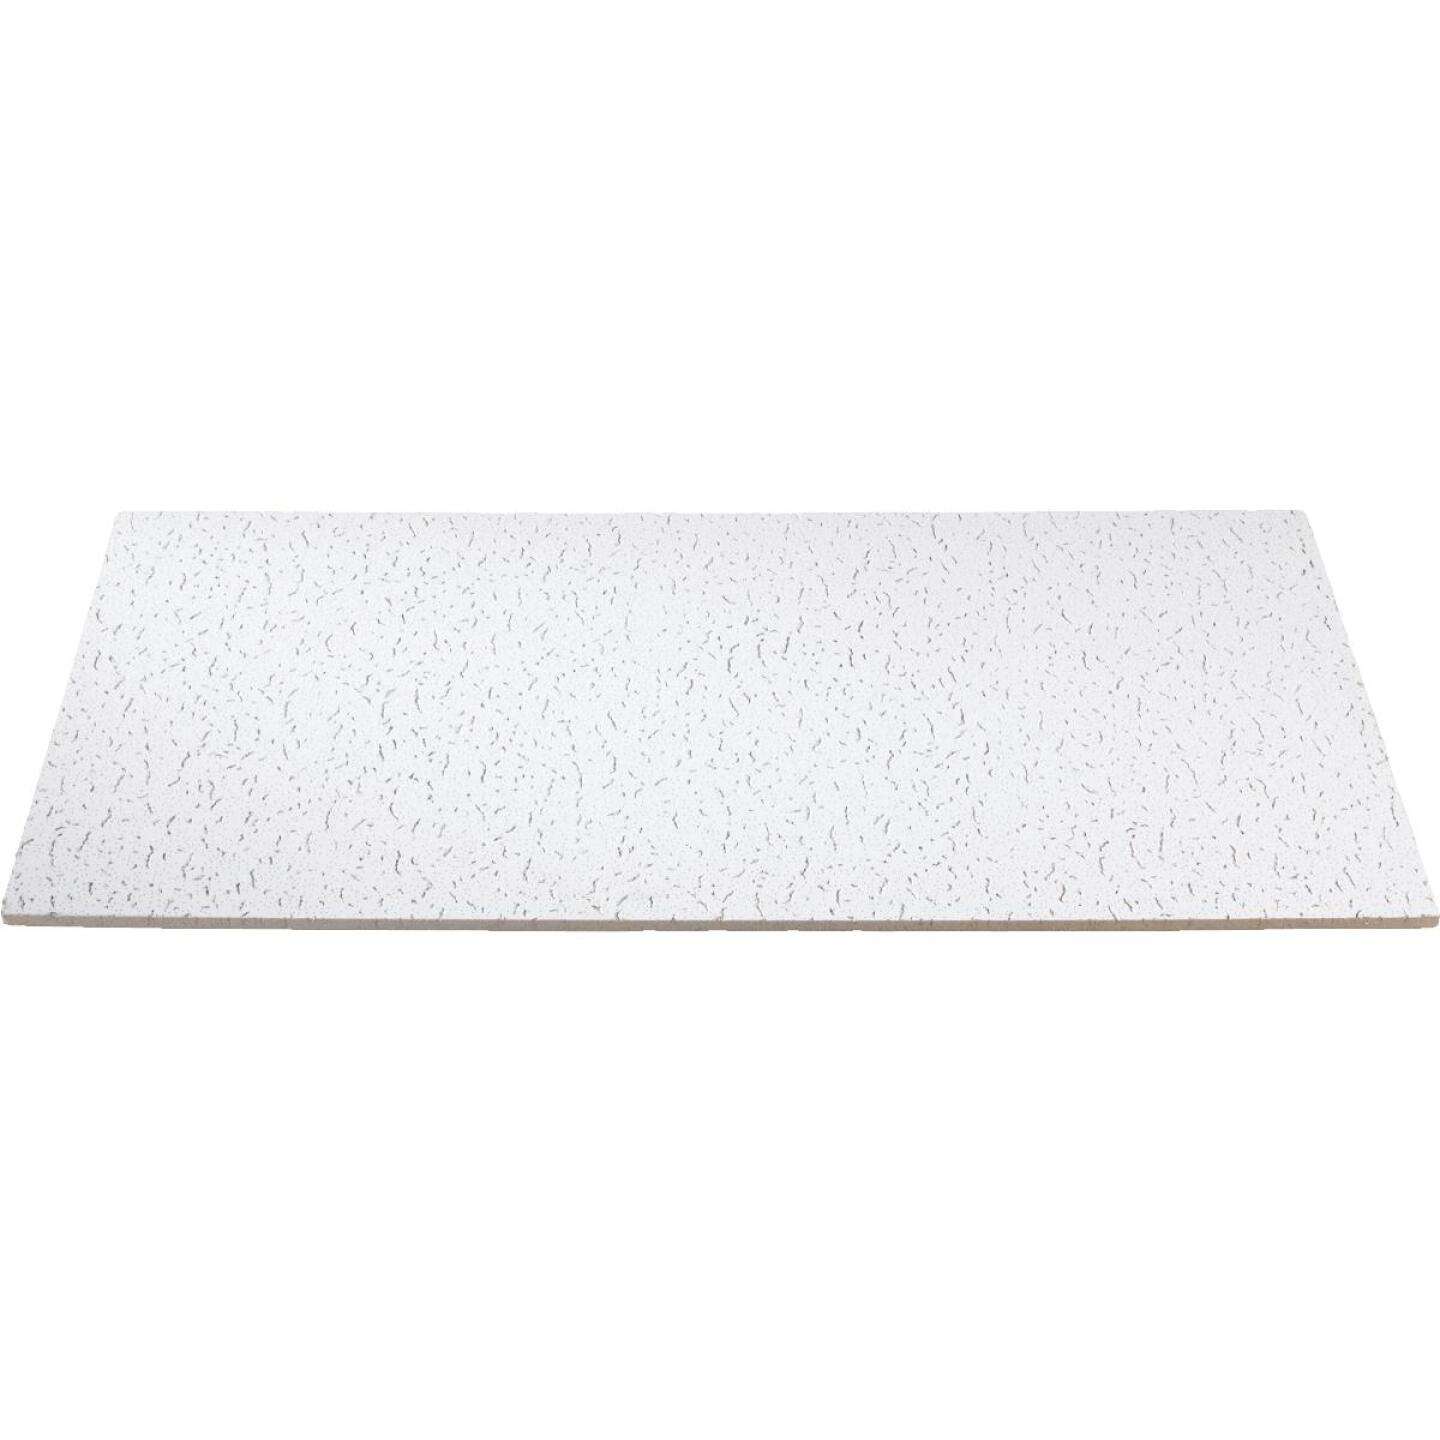 Fifth Avenue 2 Ft. x 4 Ft. White Mineral Fiber Square Edge Ceiling Tile (8-Count) Image 6